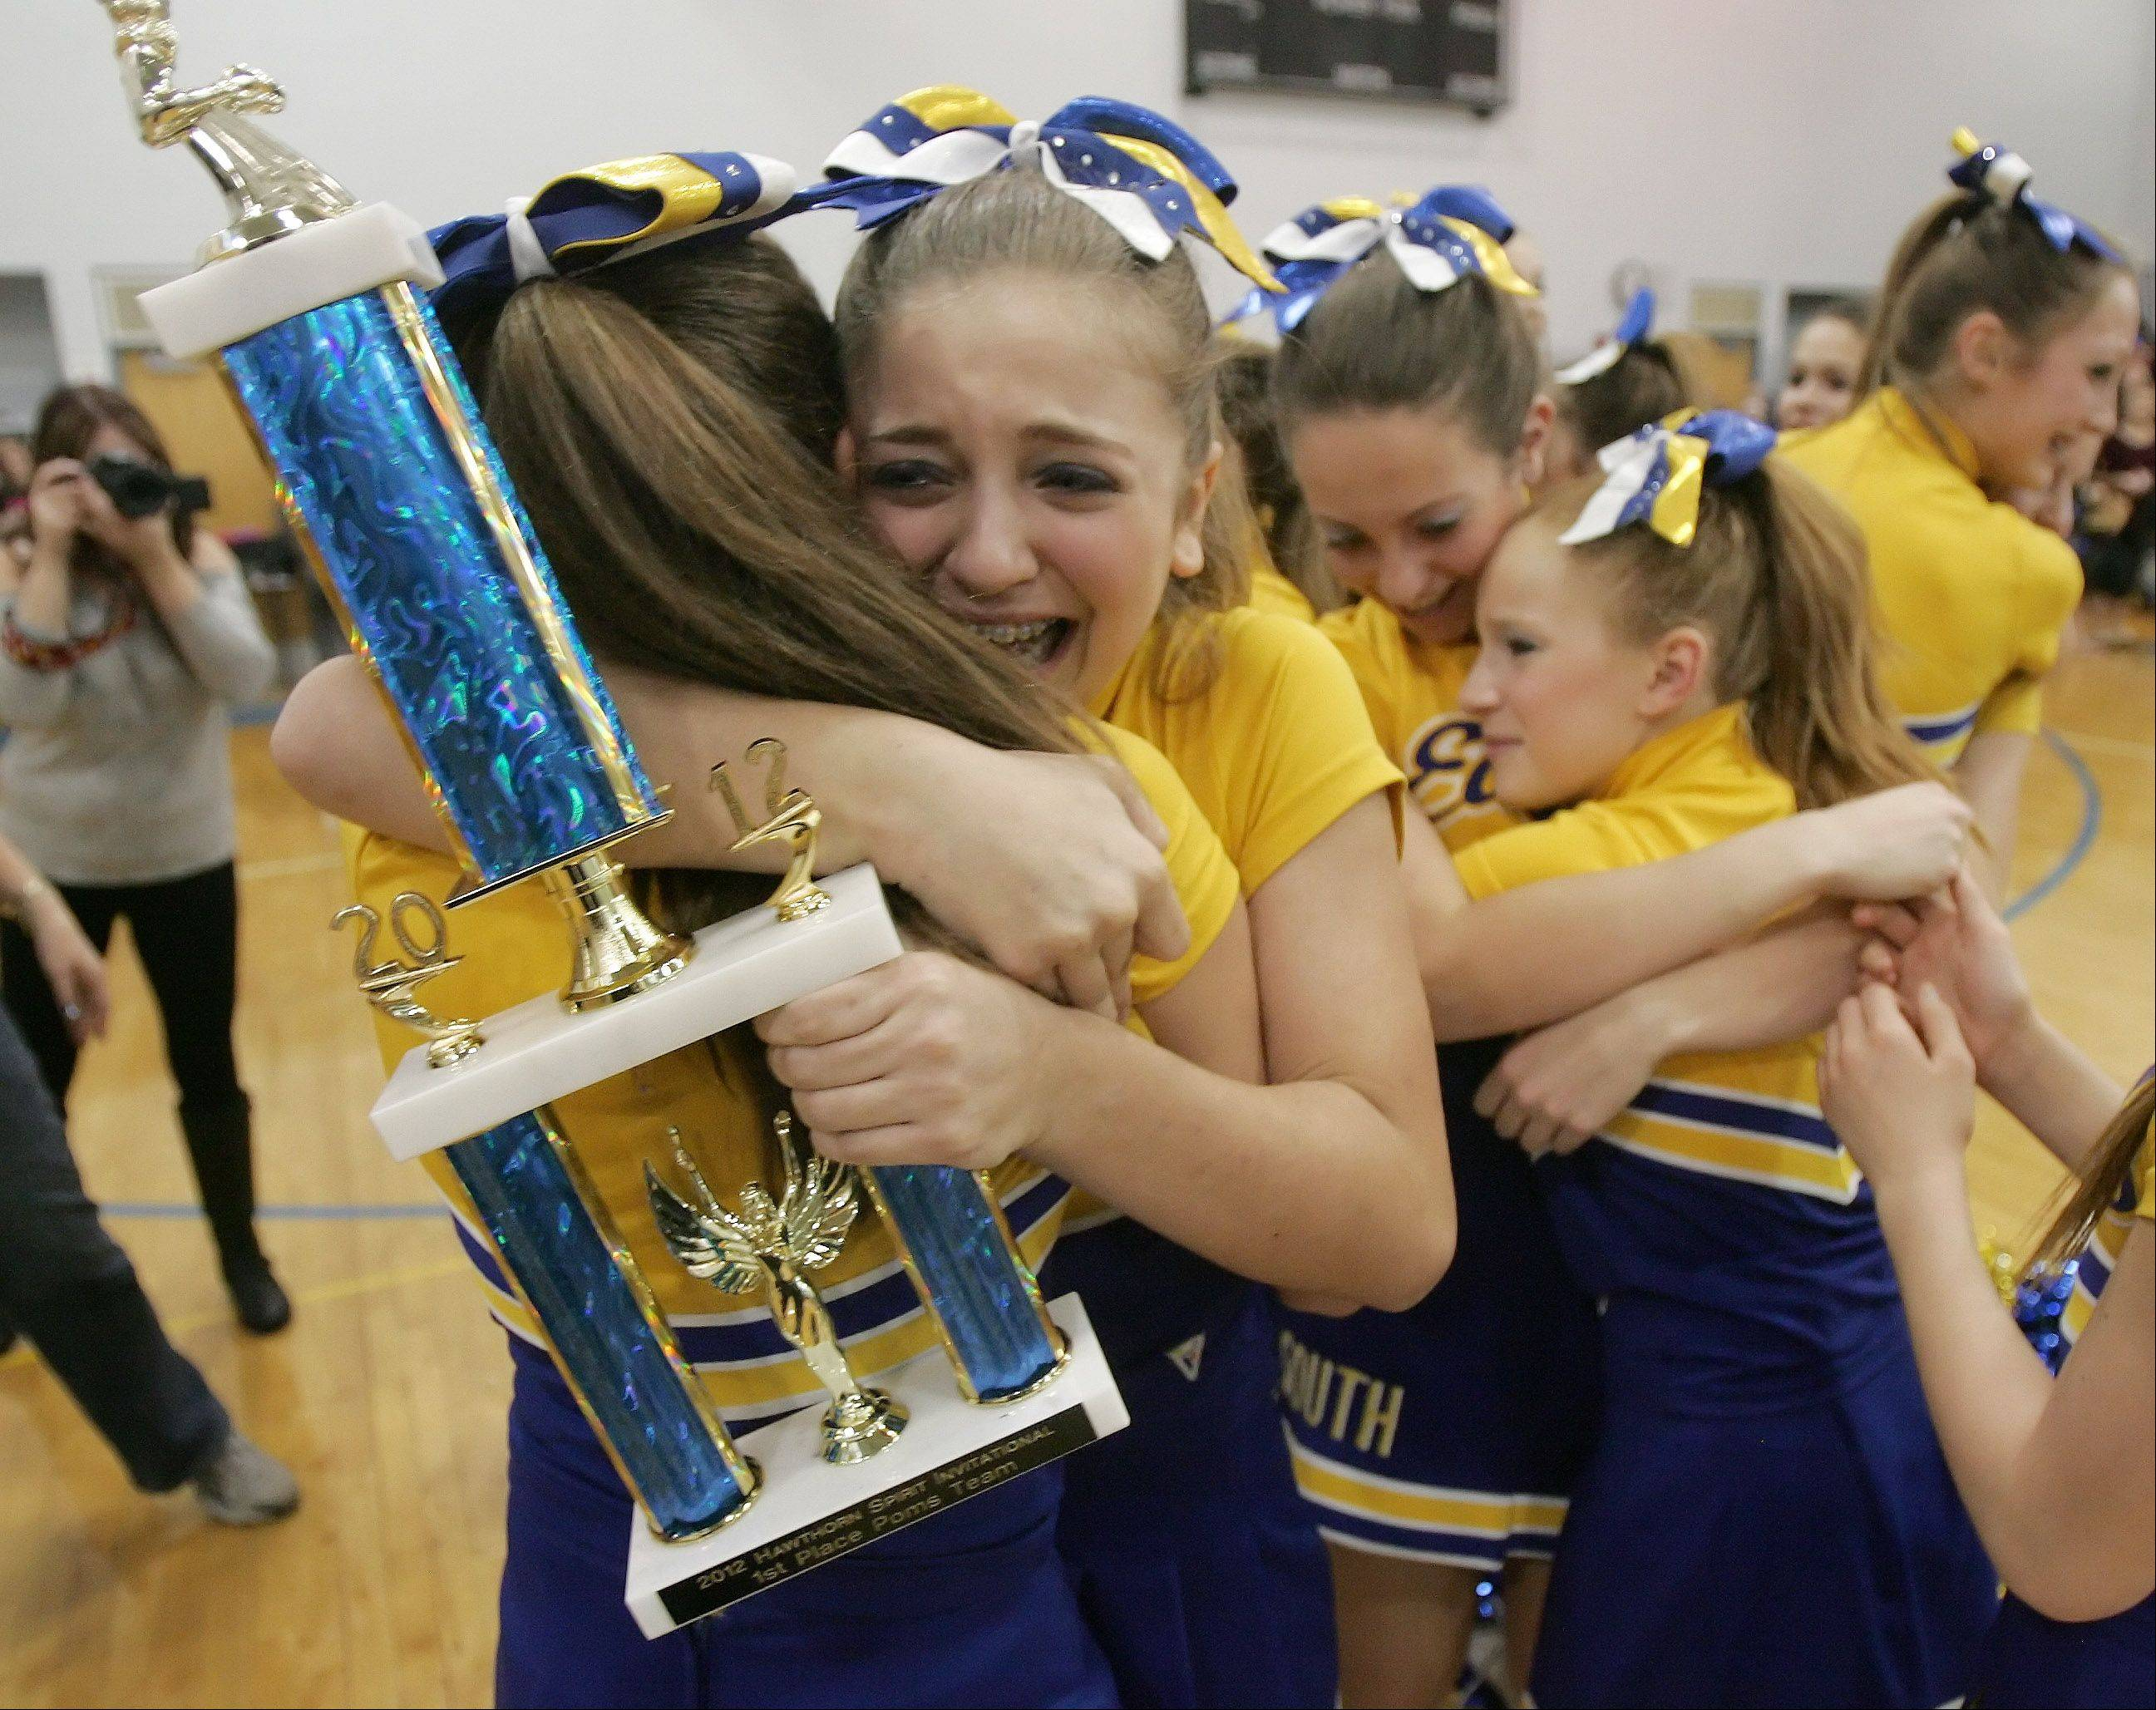 Captains Ellie Blumenfeld, center, and Ally Ripes hug after Hawthorn Middle School South won first place in the pom competition during the 13th Annual Hawthorn Spirit Invitational Sunday at Hawthorn Middle School South in Vernon Hills. The event featured Lake County middle school teams competing in pom and cheerleading routines.